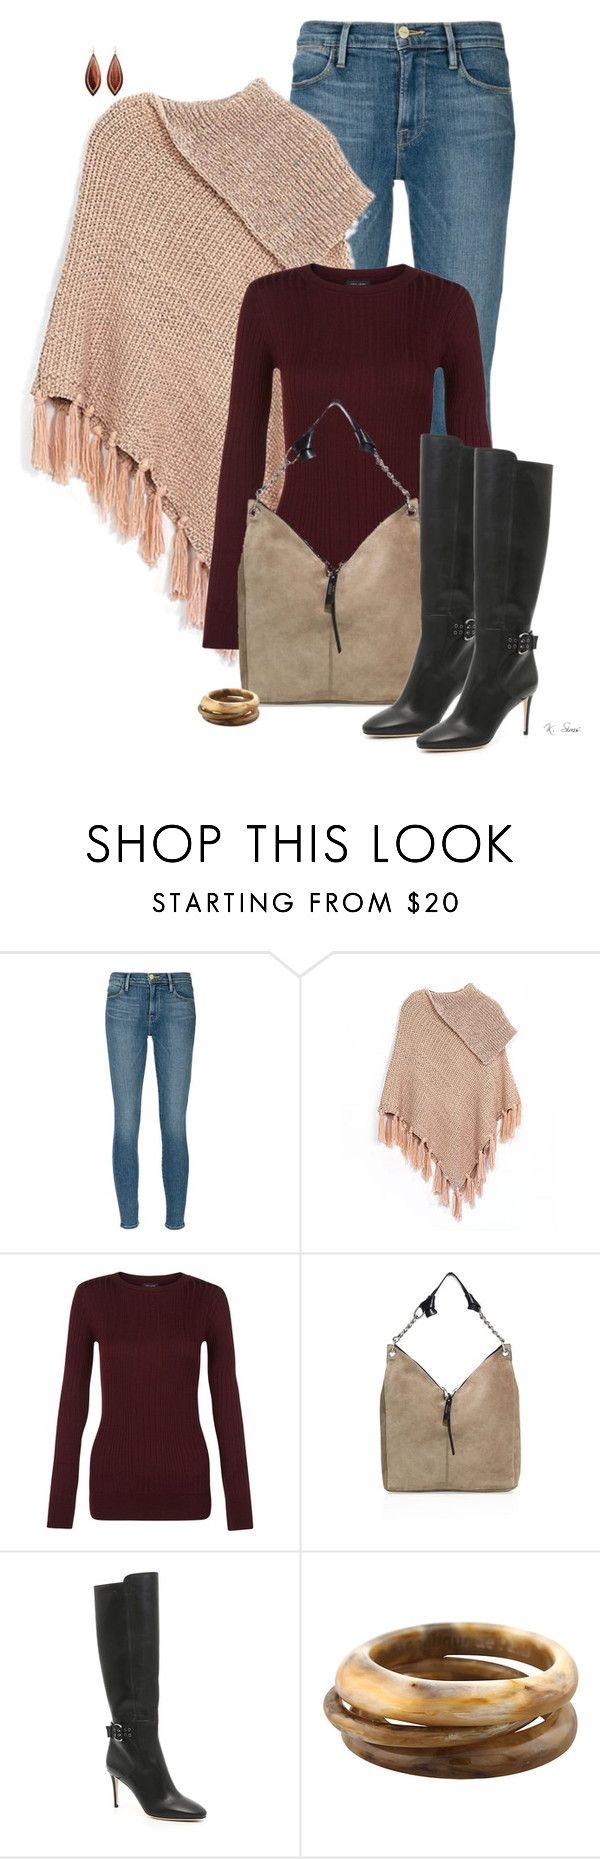 """""""Getting cold"""" by ksims-1 ❤ liked on Polyvore featuring Frame Denim, Do Everything In Love, Jimmy Choo, Angélique de Paris and Mark Davis"""